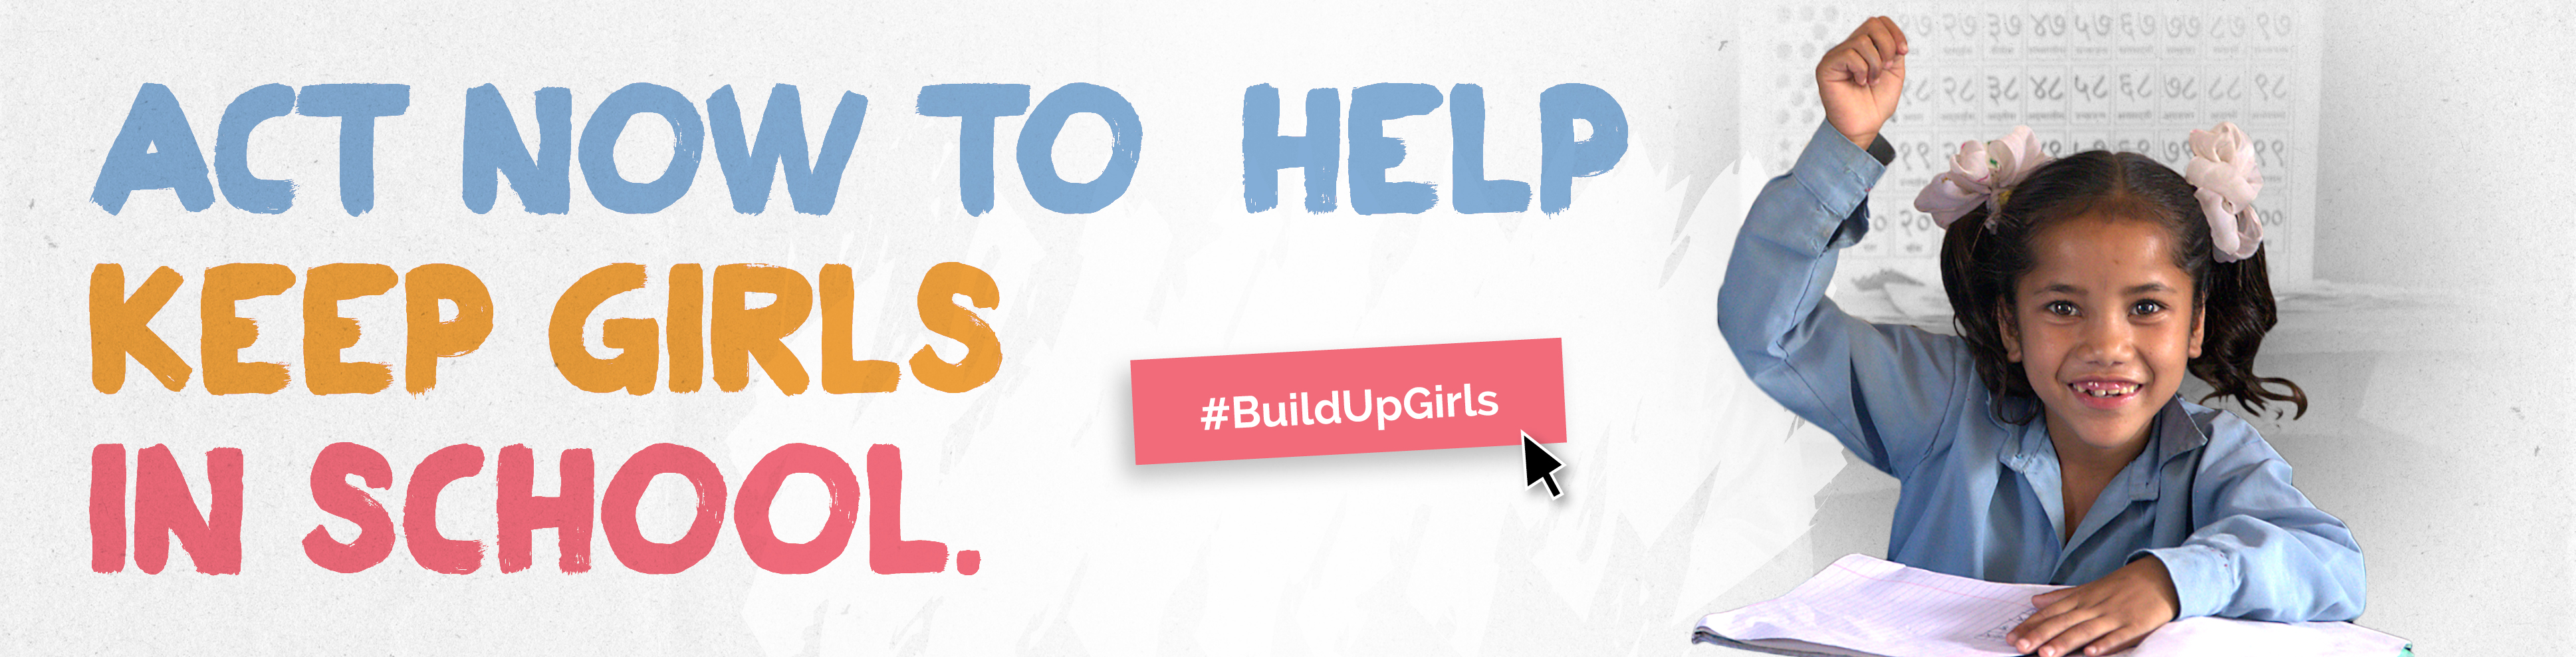 Act now to help keep girls in school